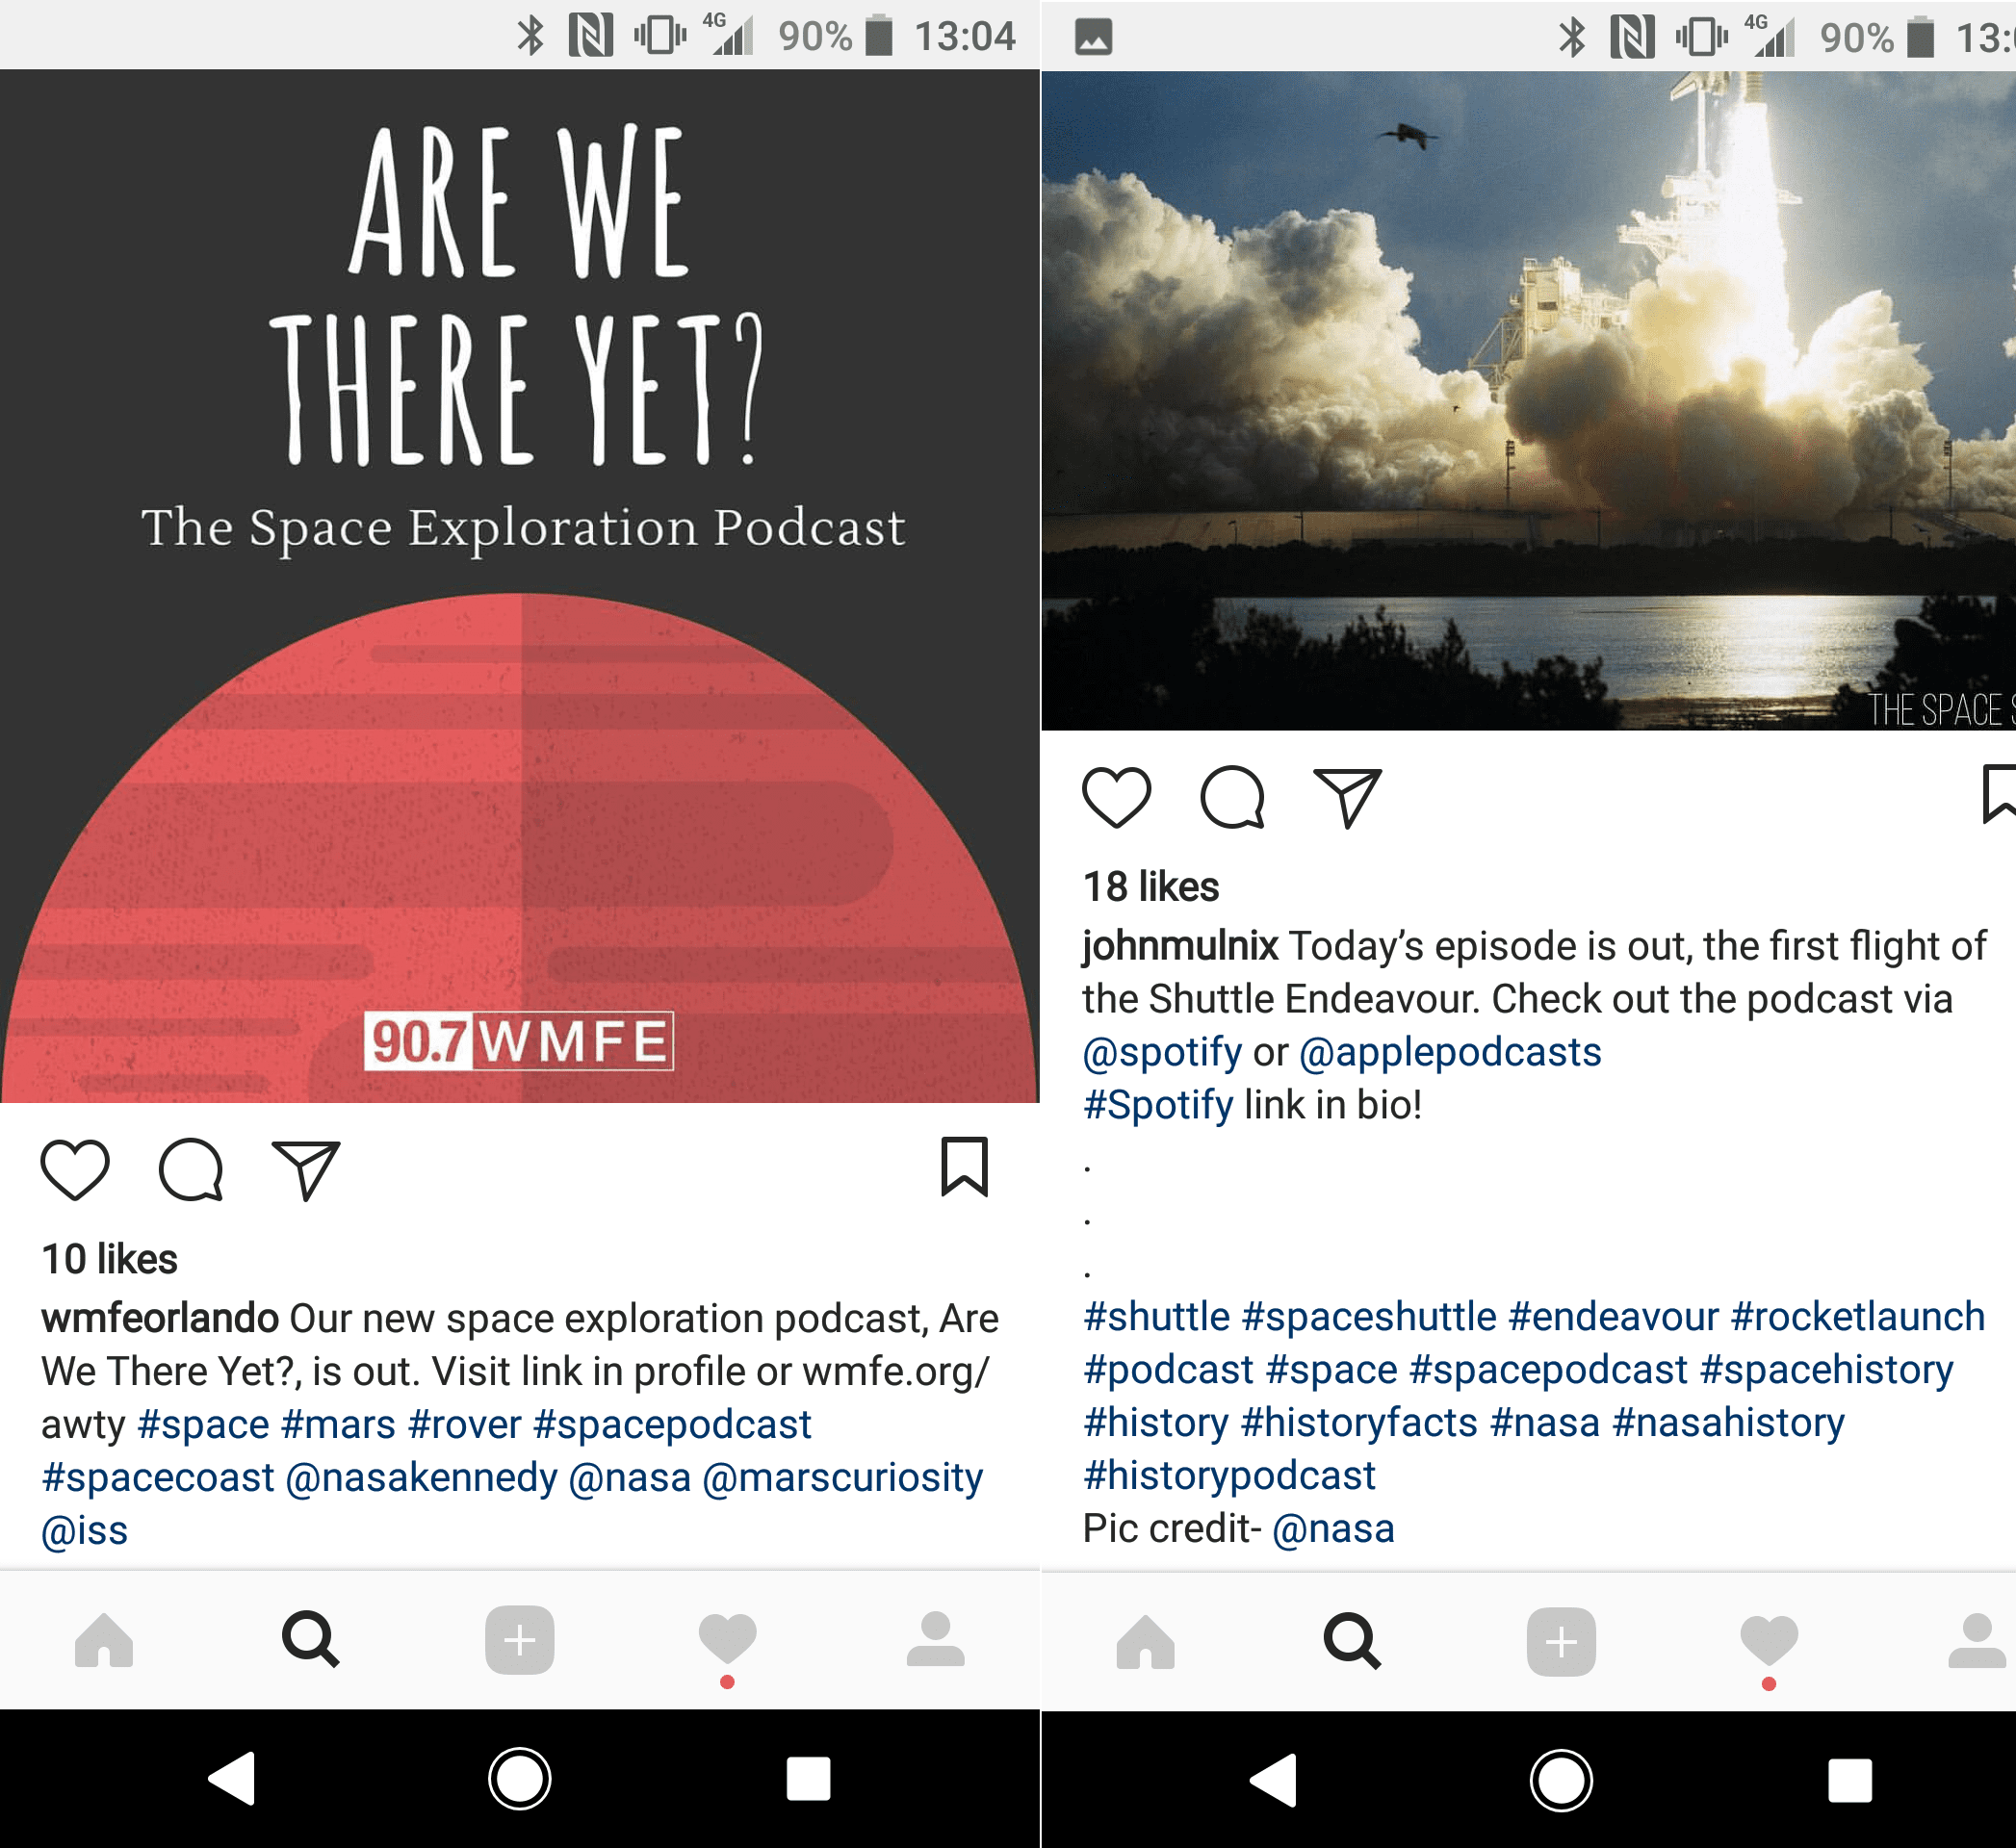 Proof of how hashtags work on Instagram